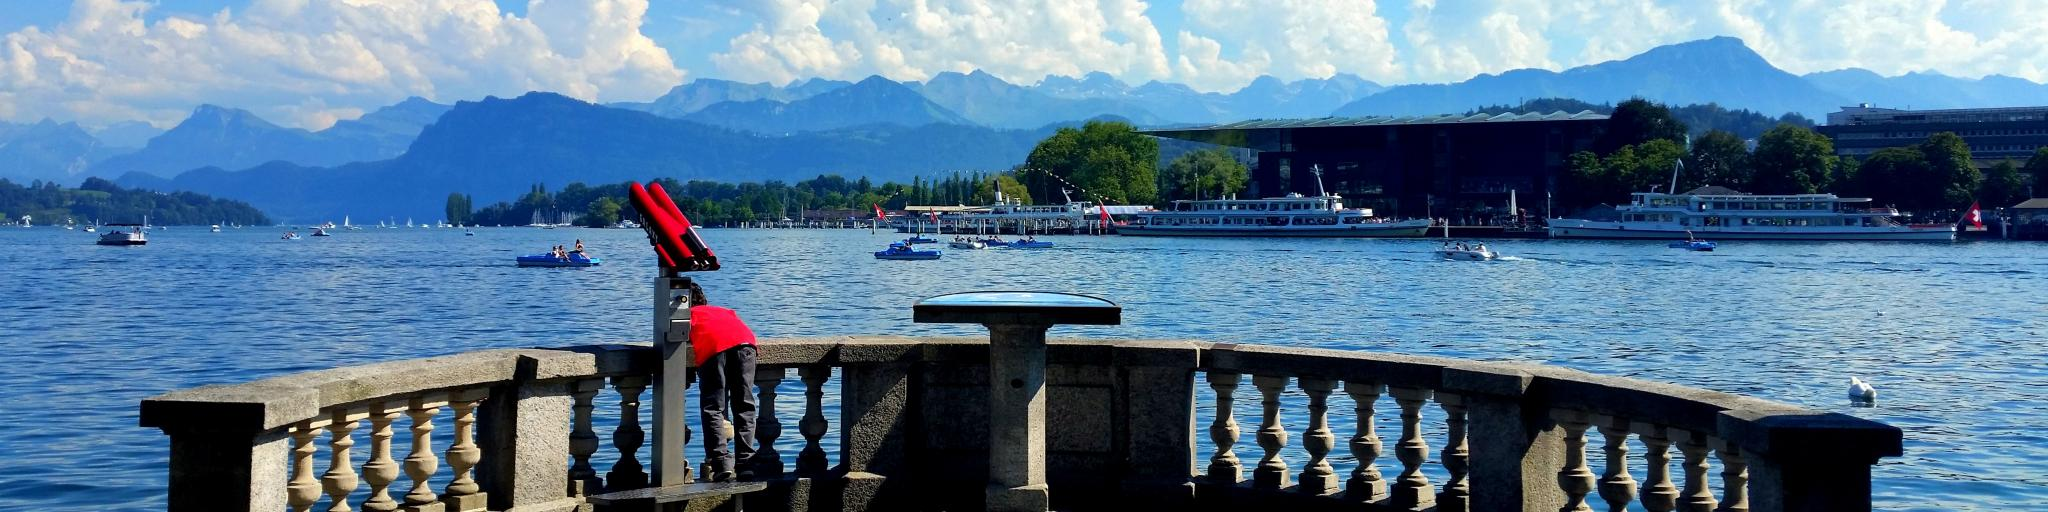 A boy looks over a balcony into Lake Lucerne, with boats and the Swiss Alps in the background